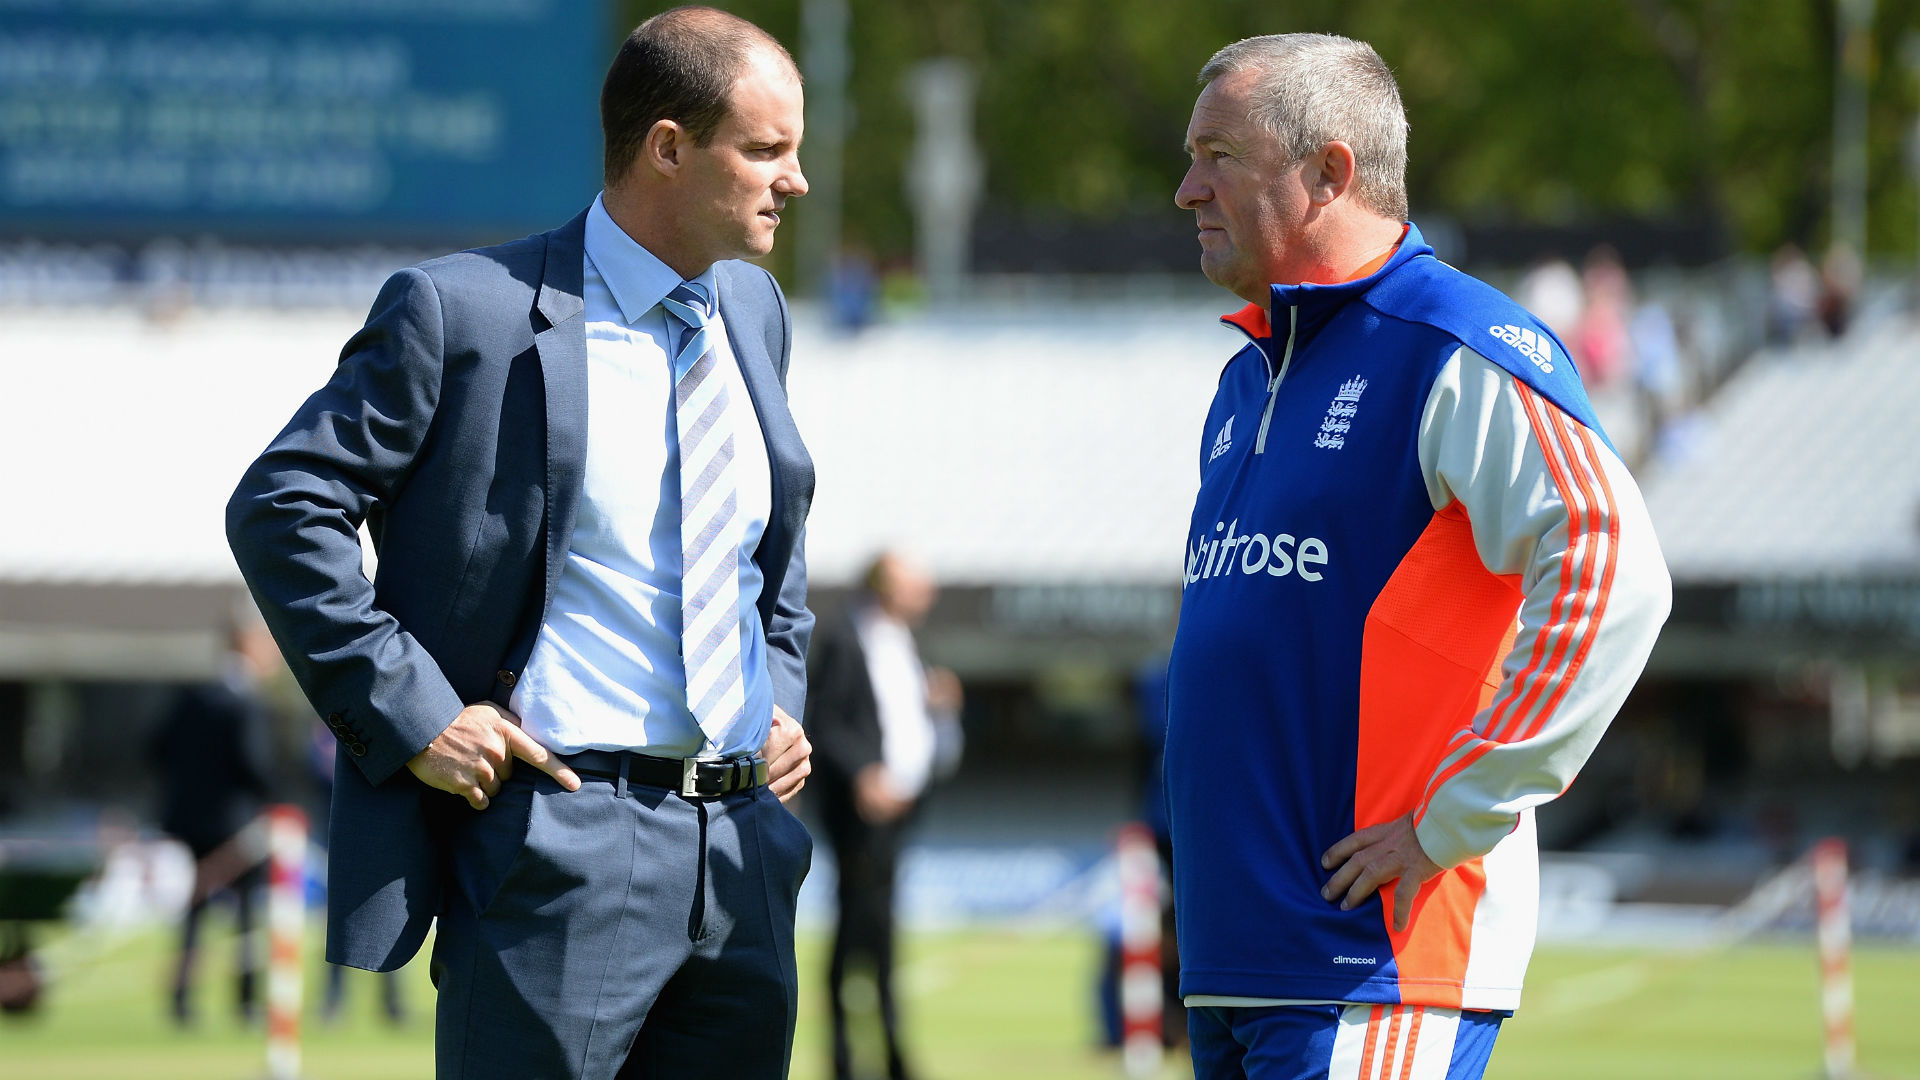 Andrew Strauss and Paul Farbrace - cropped